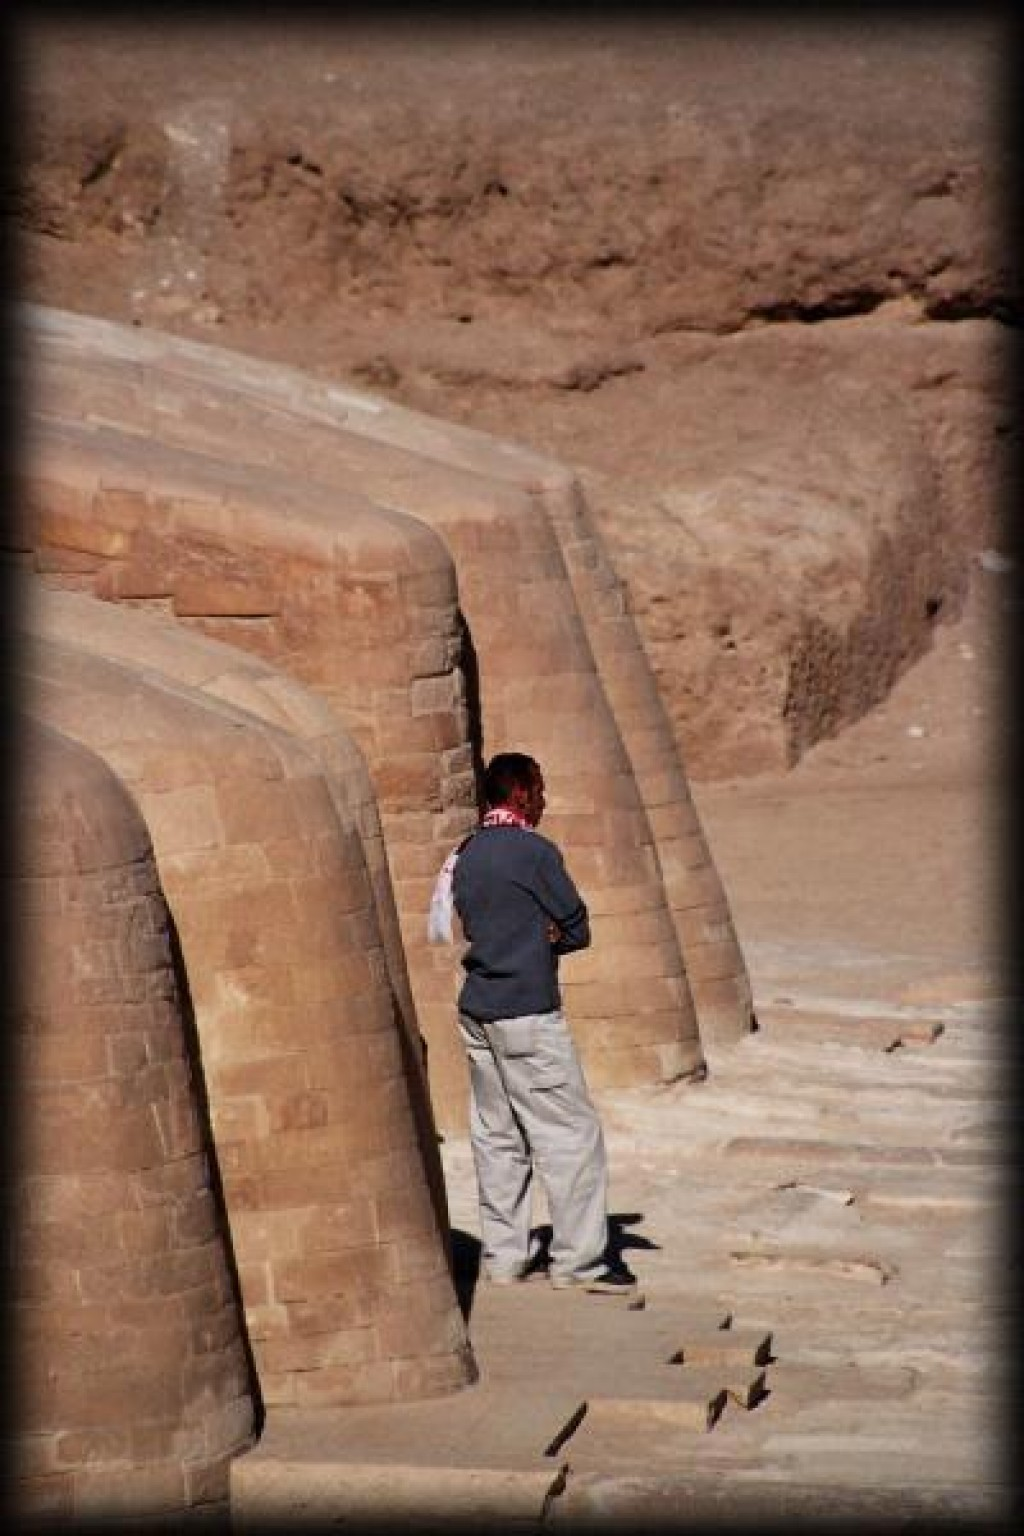 This maintenance worker is standing at the Sphinx's feet.